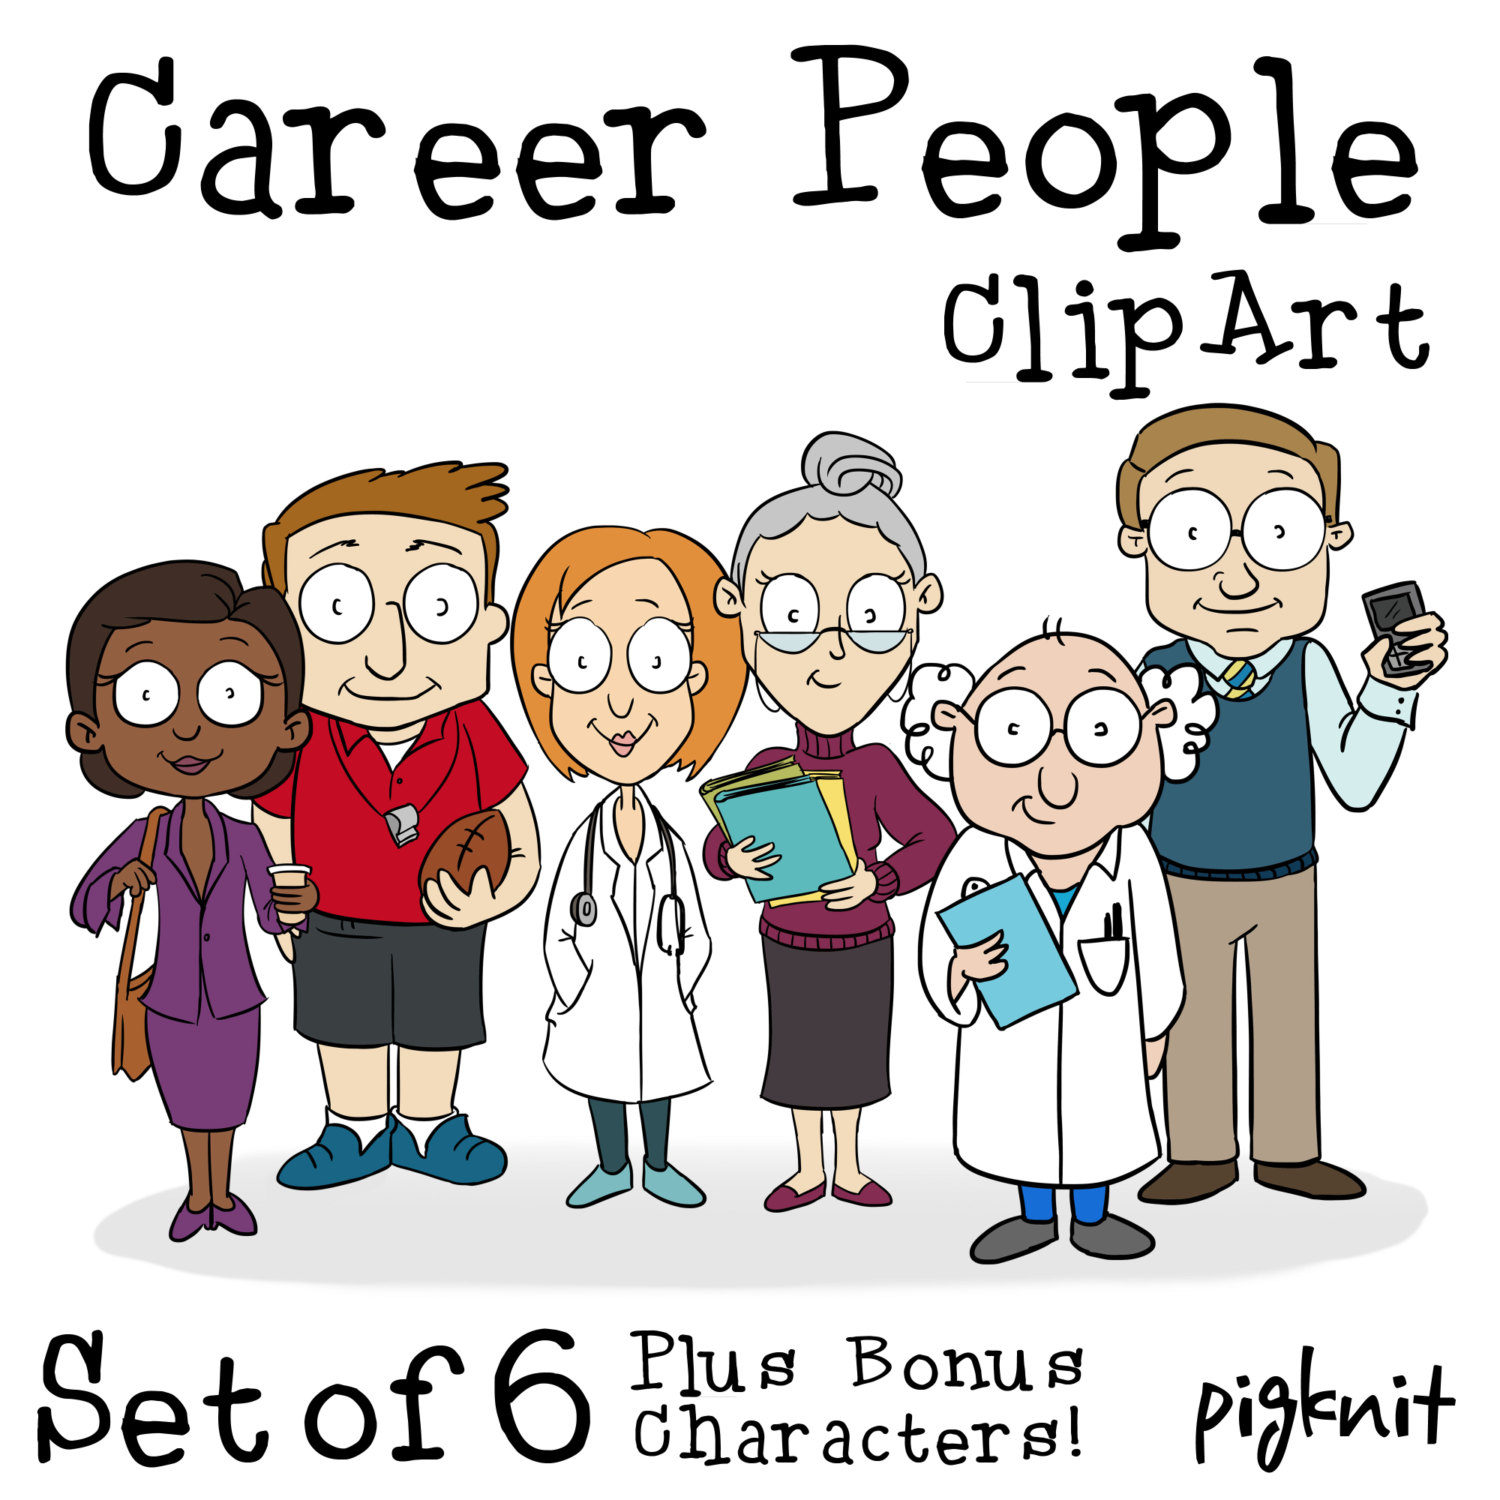 Career People Clip Art Cartoon Character Clip Art By Pigknit